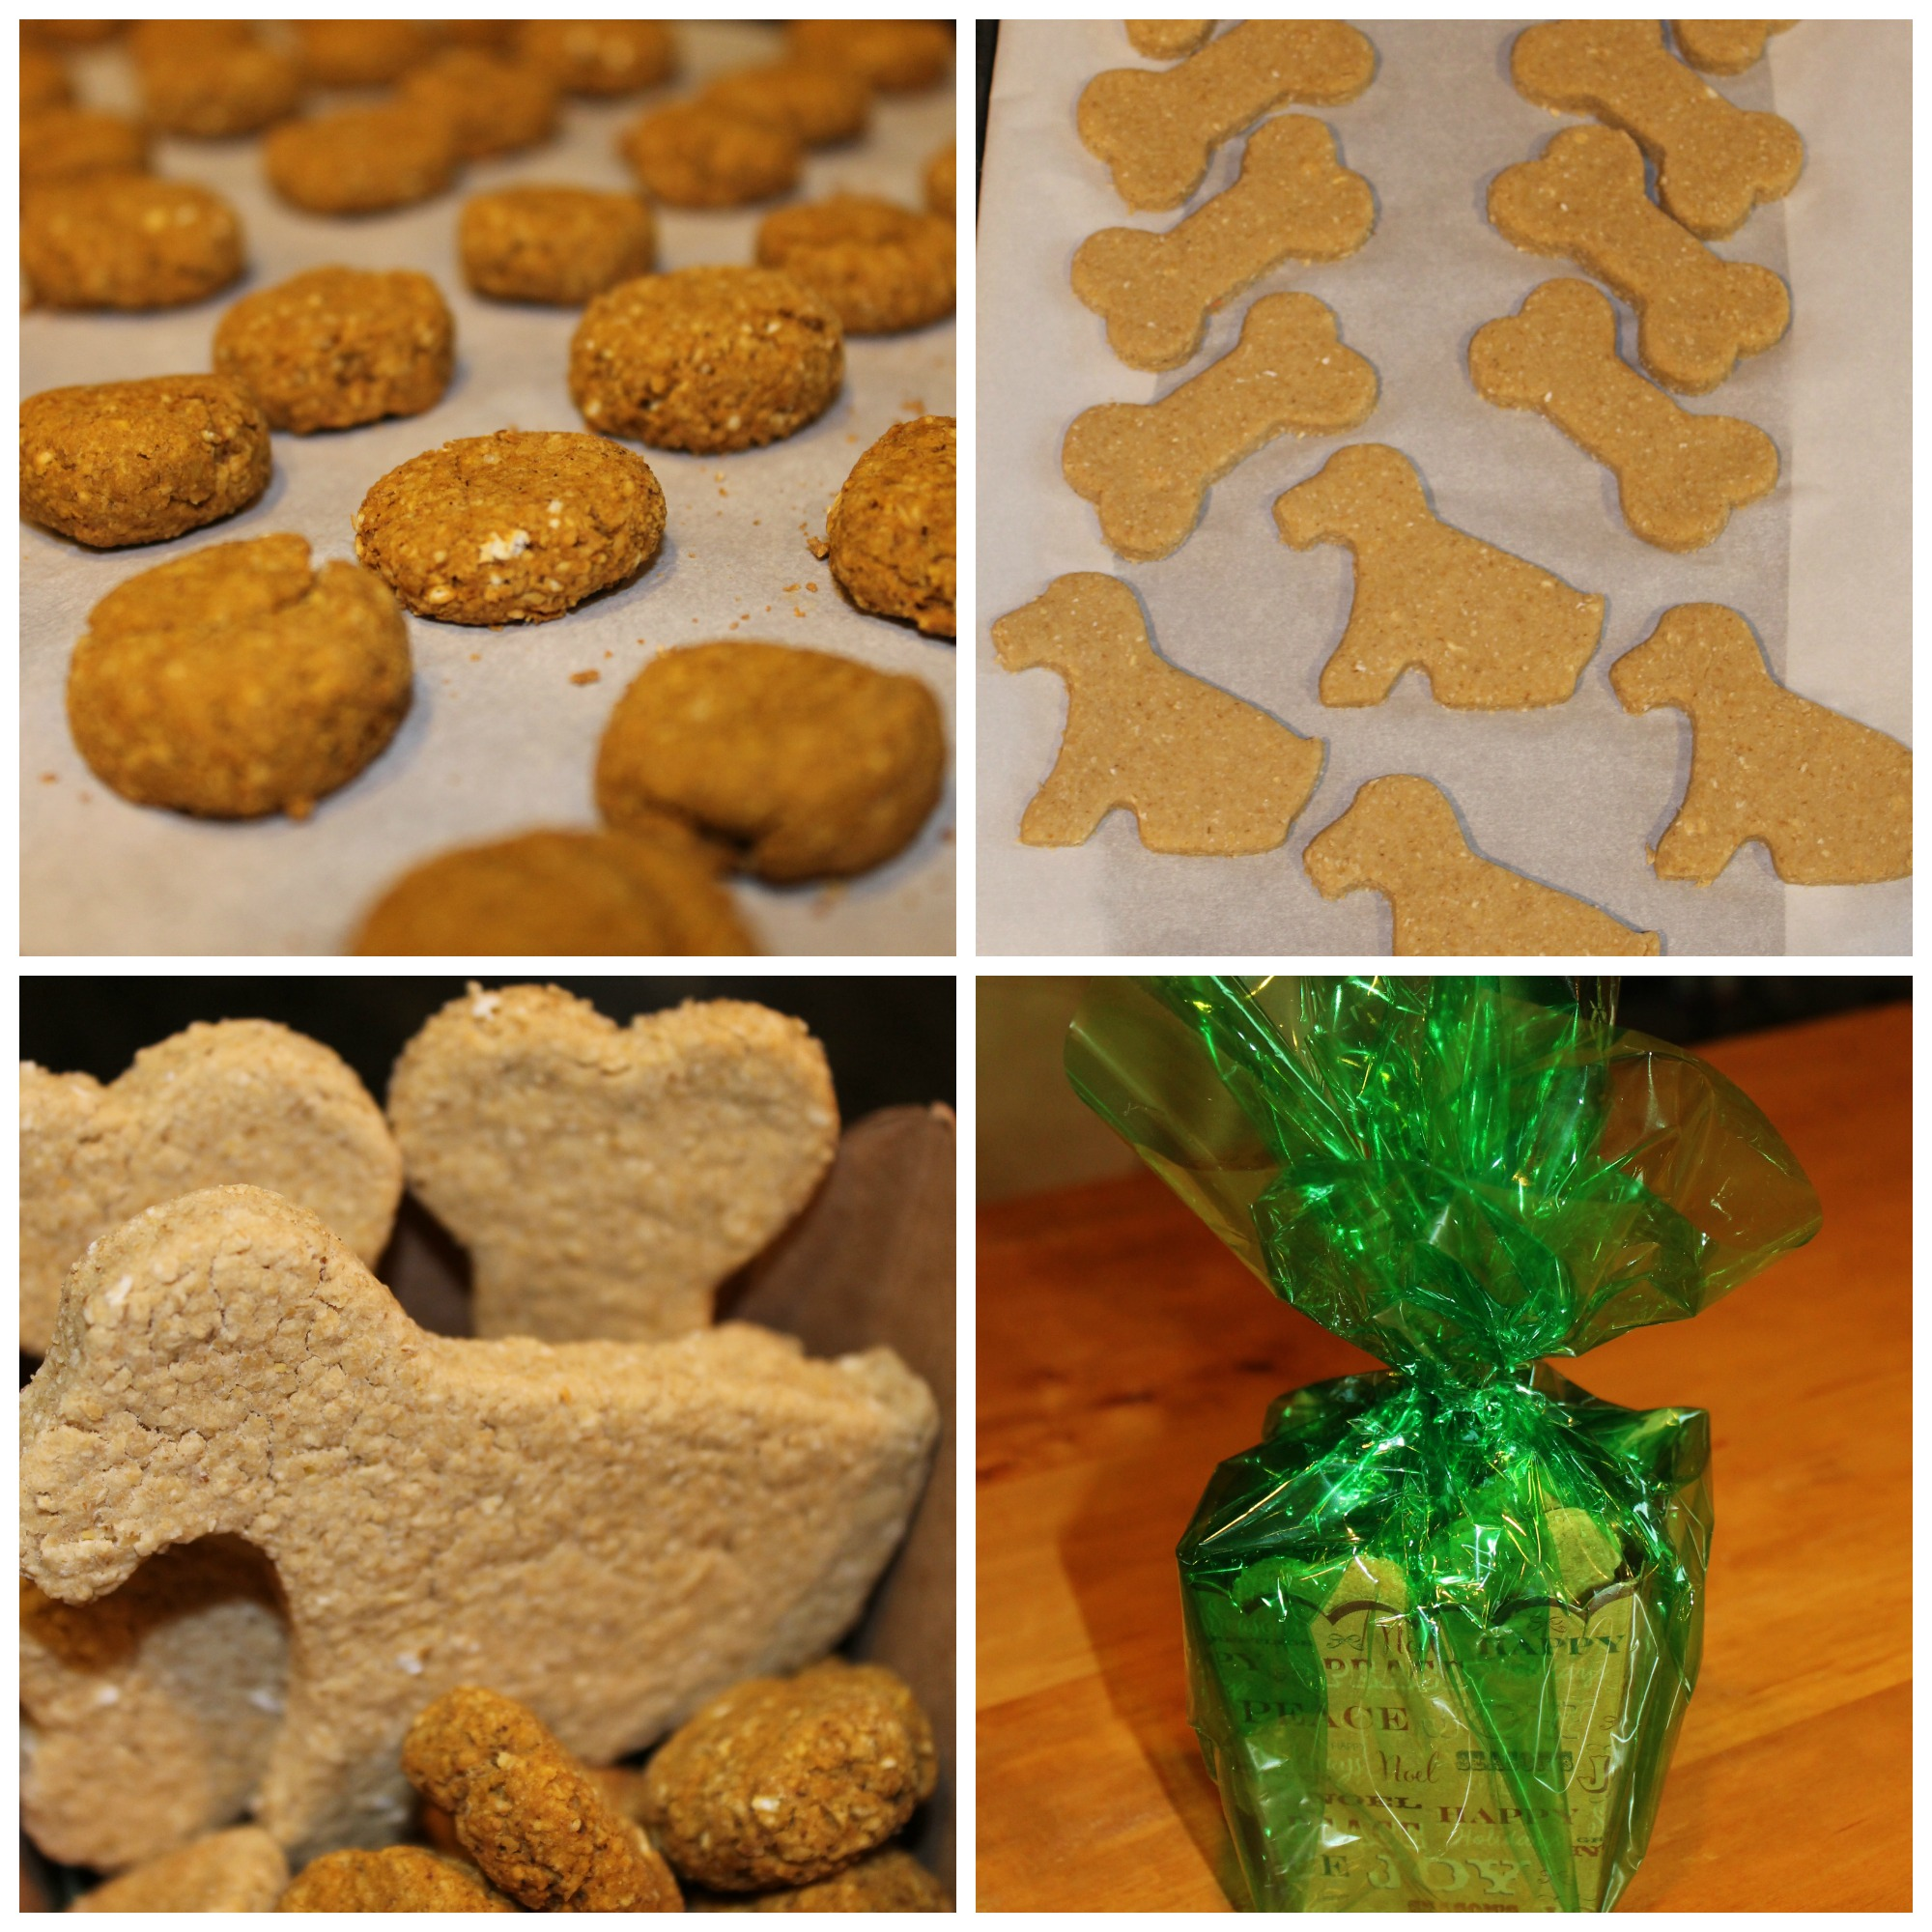 Doggy cookie collage